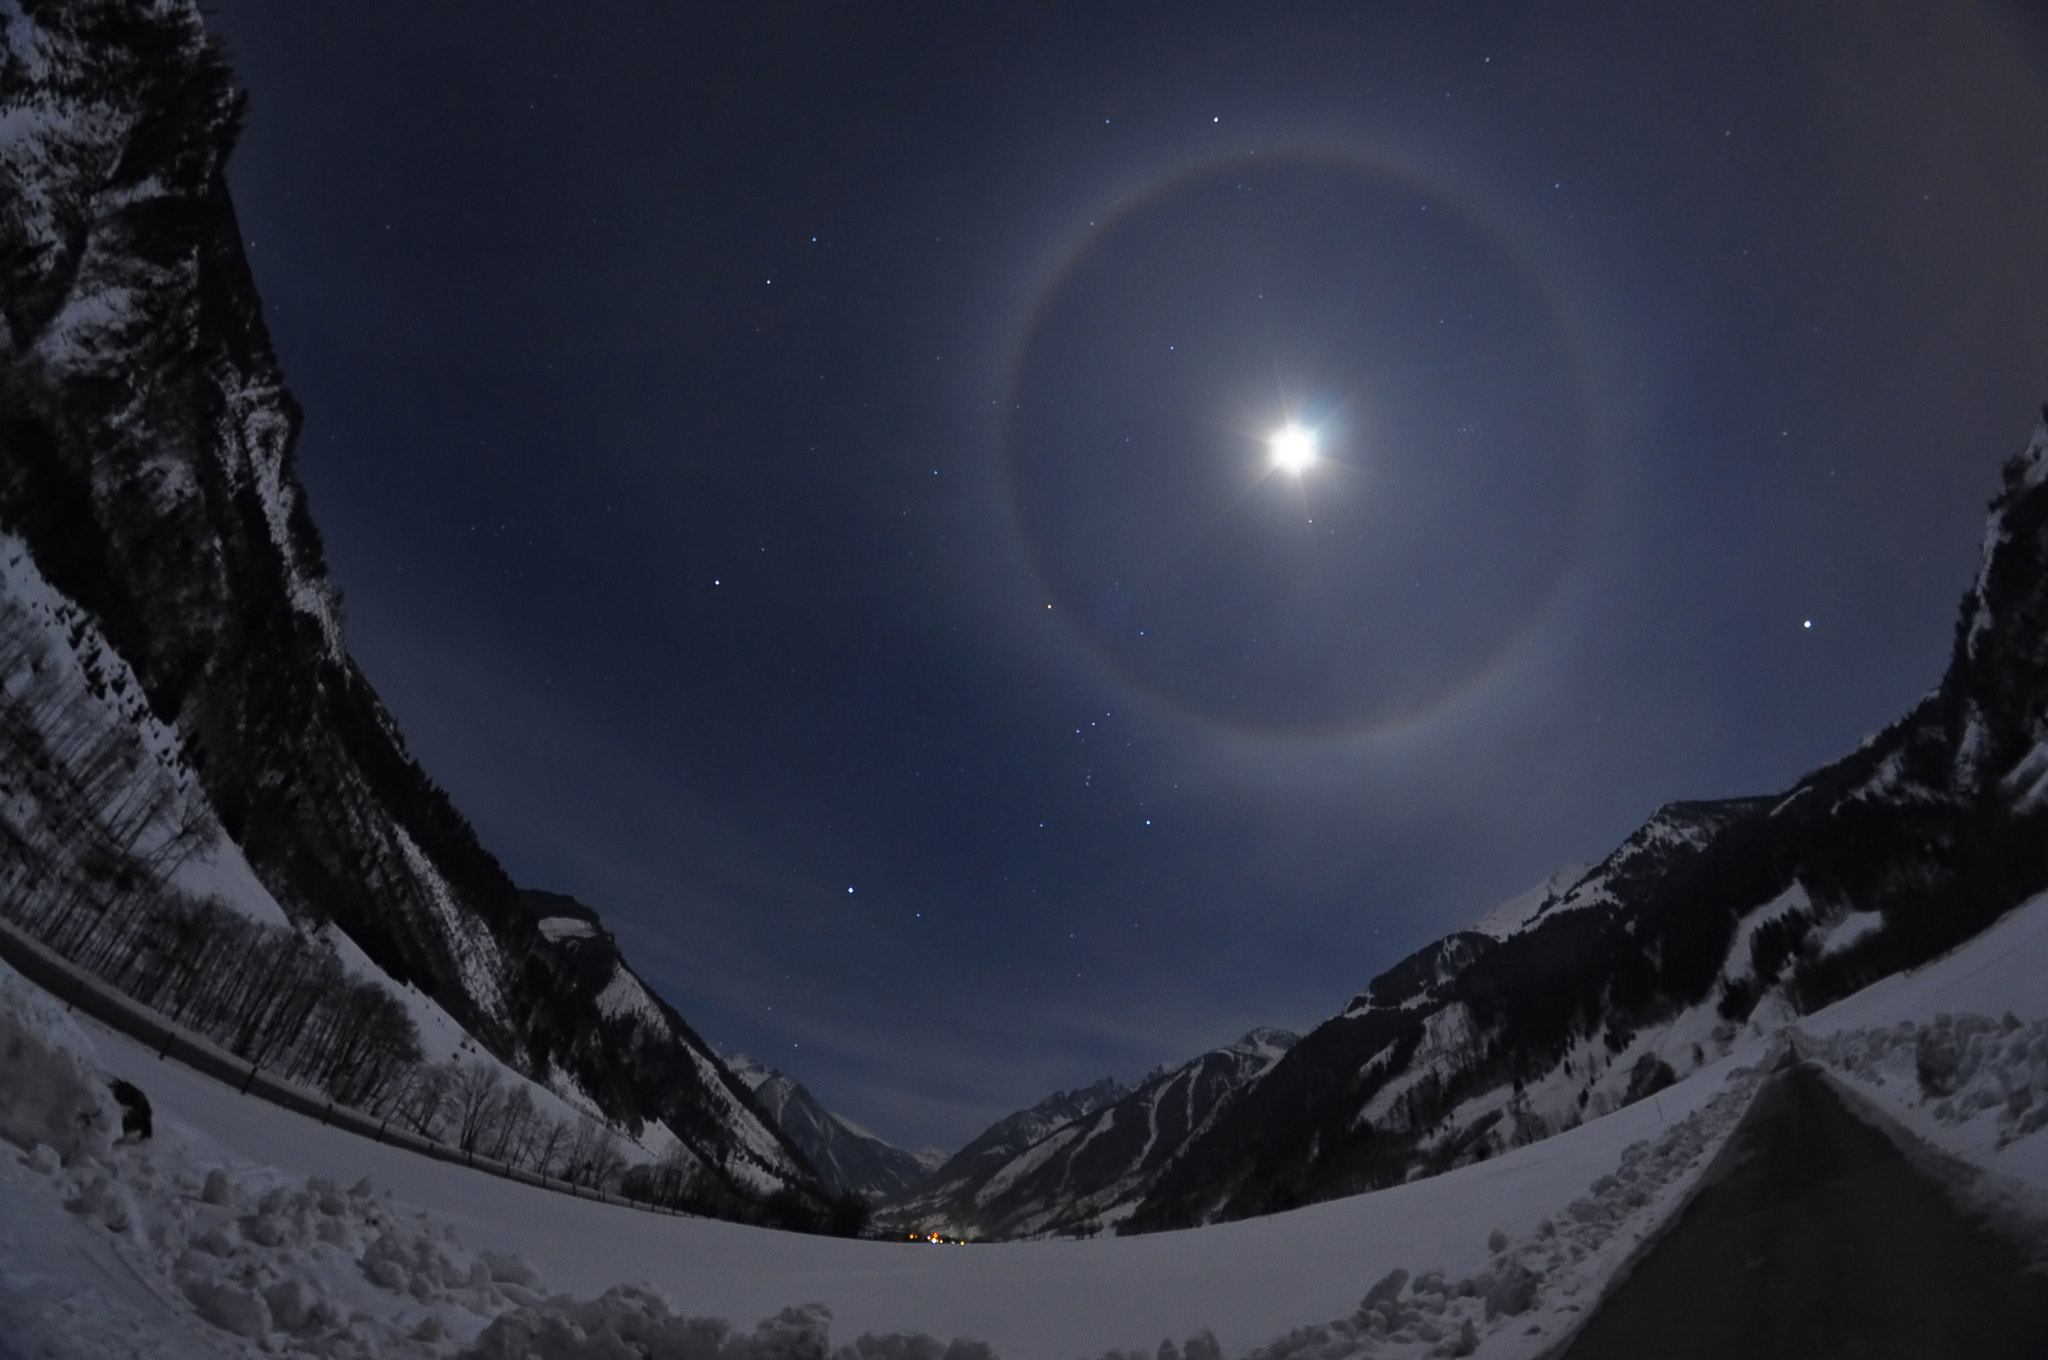 Photograph Lunar Halo by Patrick Hochleitner on 500px